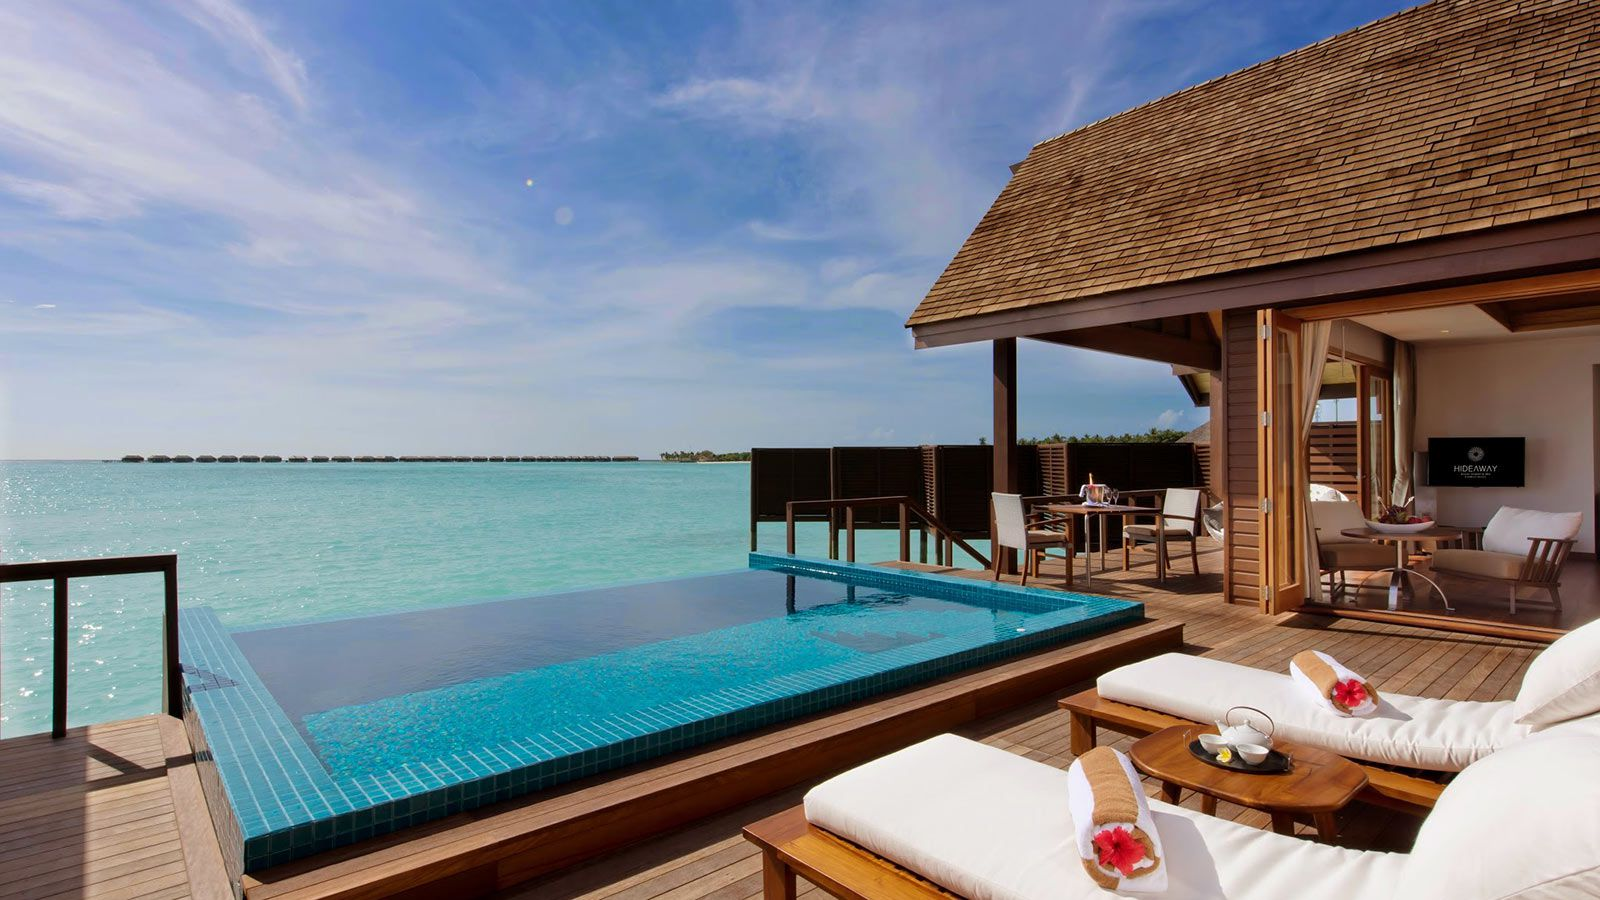 Maldives Beach Resort - Maldives Luxury Beach Resort - Hideaway Beach Resort